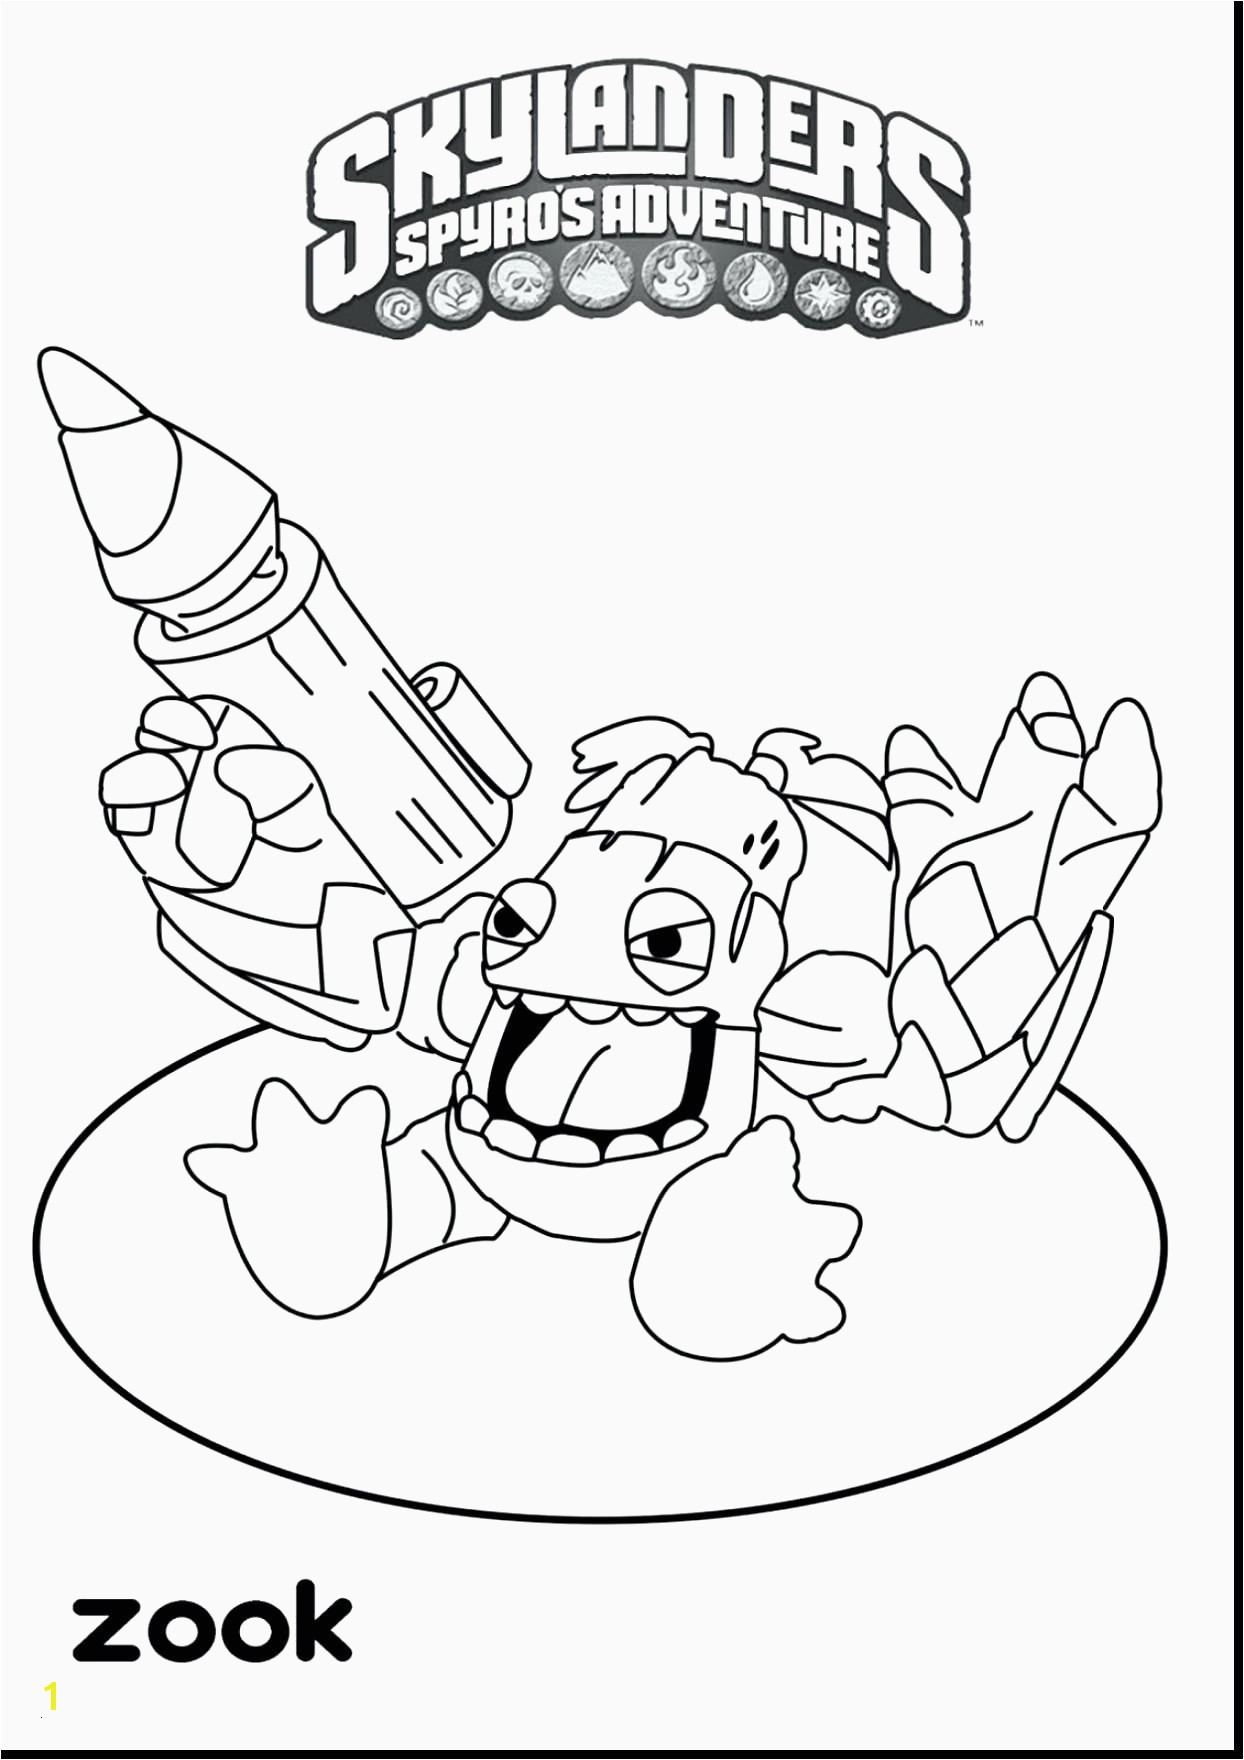 Cool Coloring Page Inspirational Witch Coloring Pages New Crayola Pages 0d Coloring Page Awesome Valentines